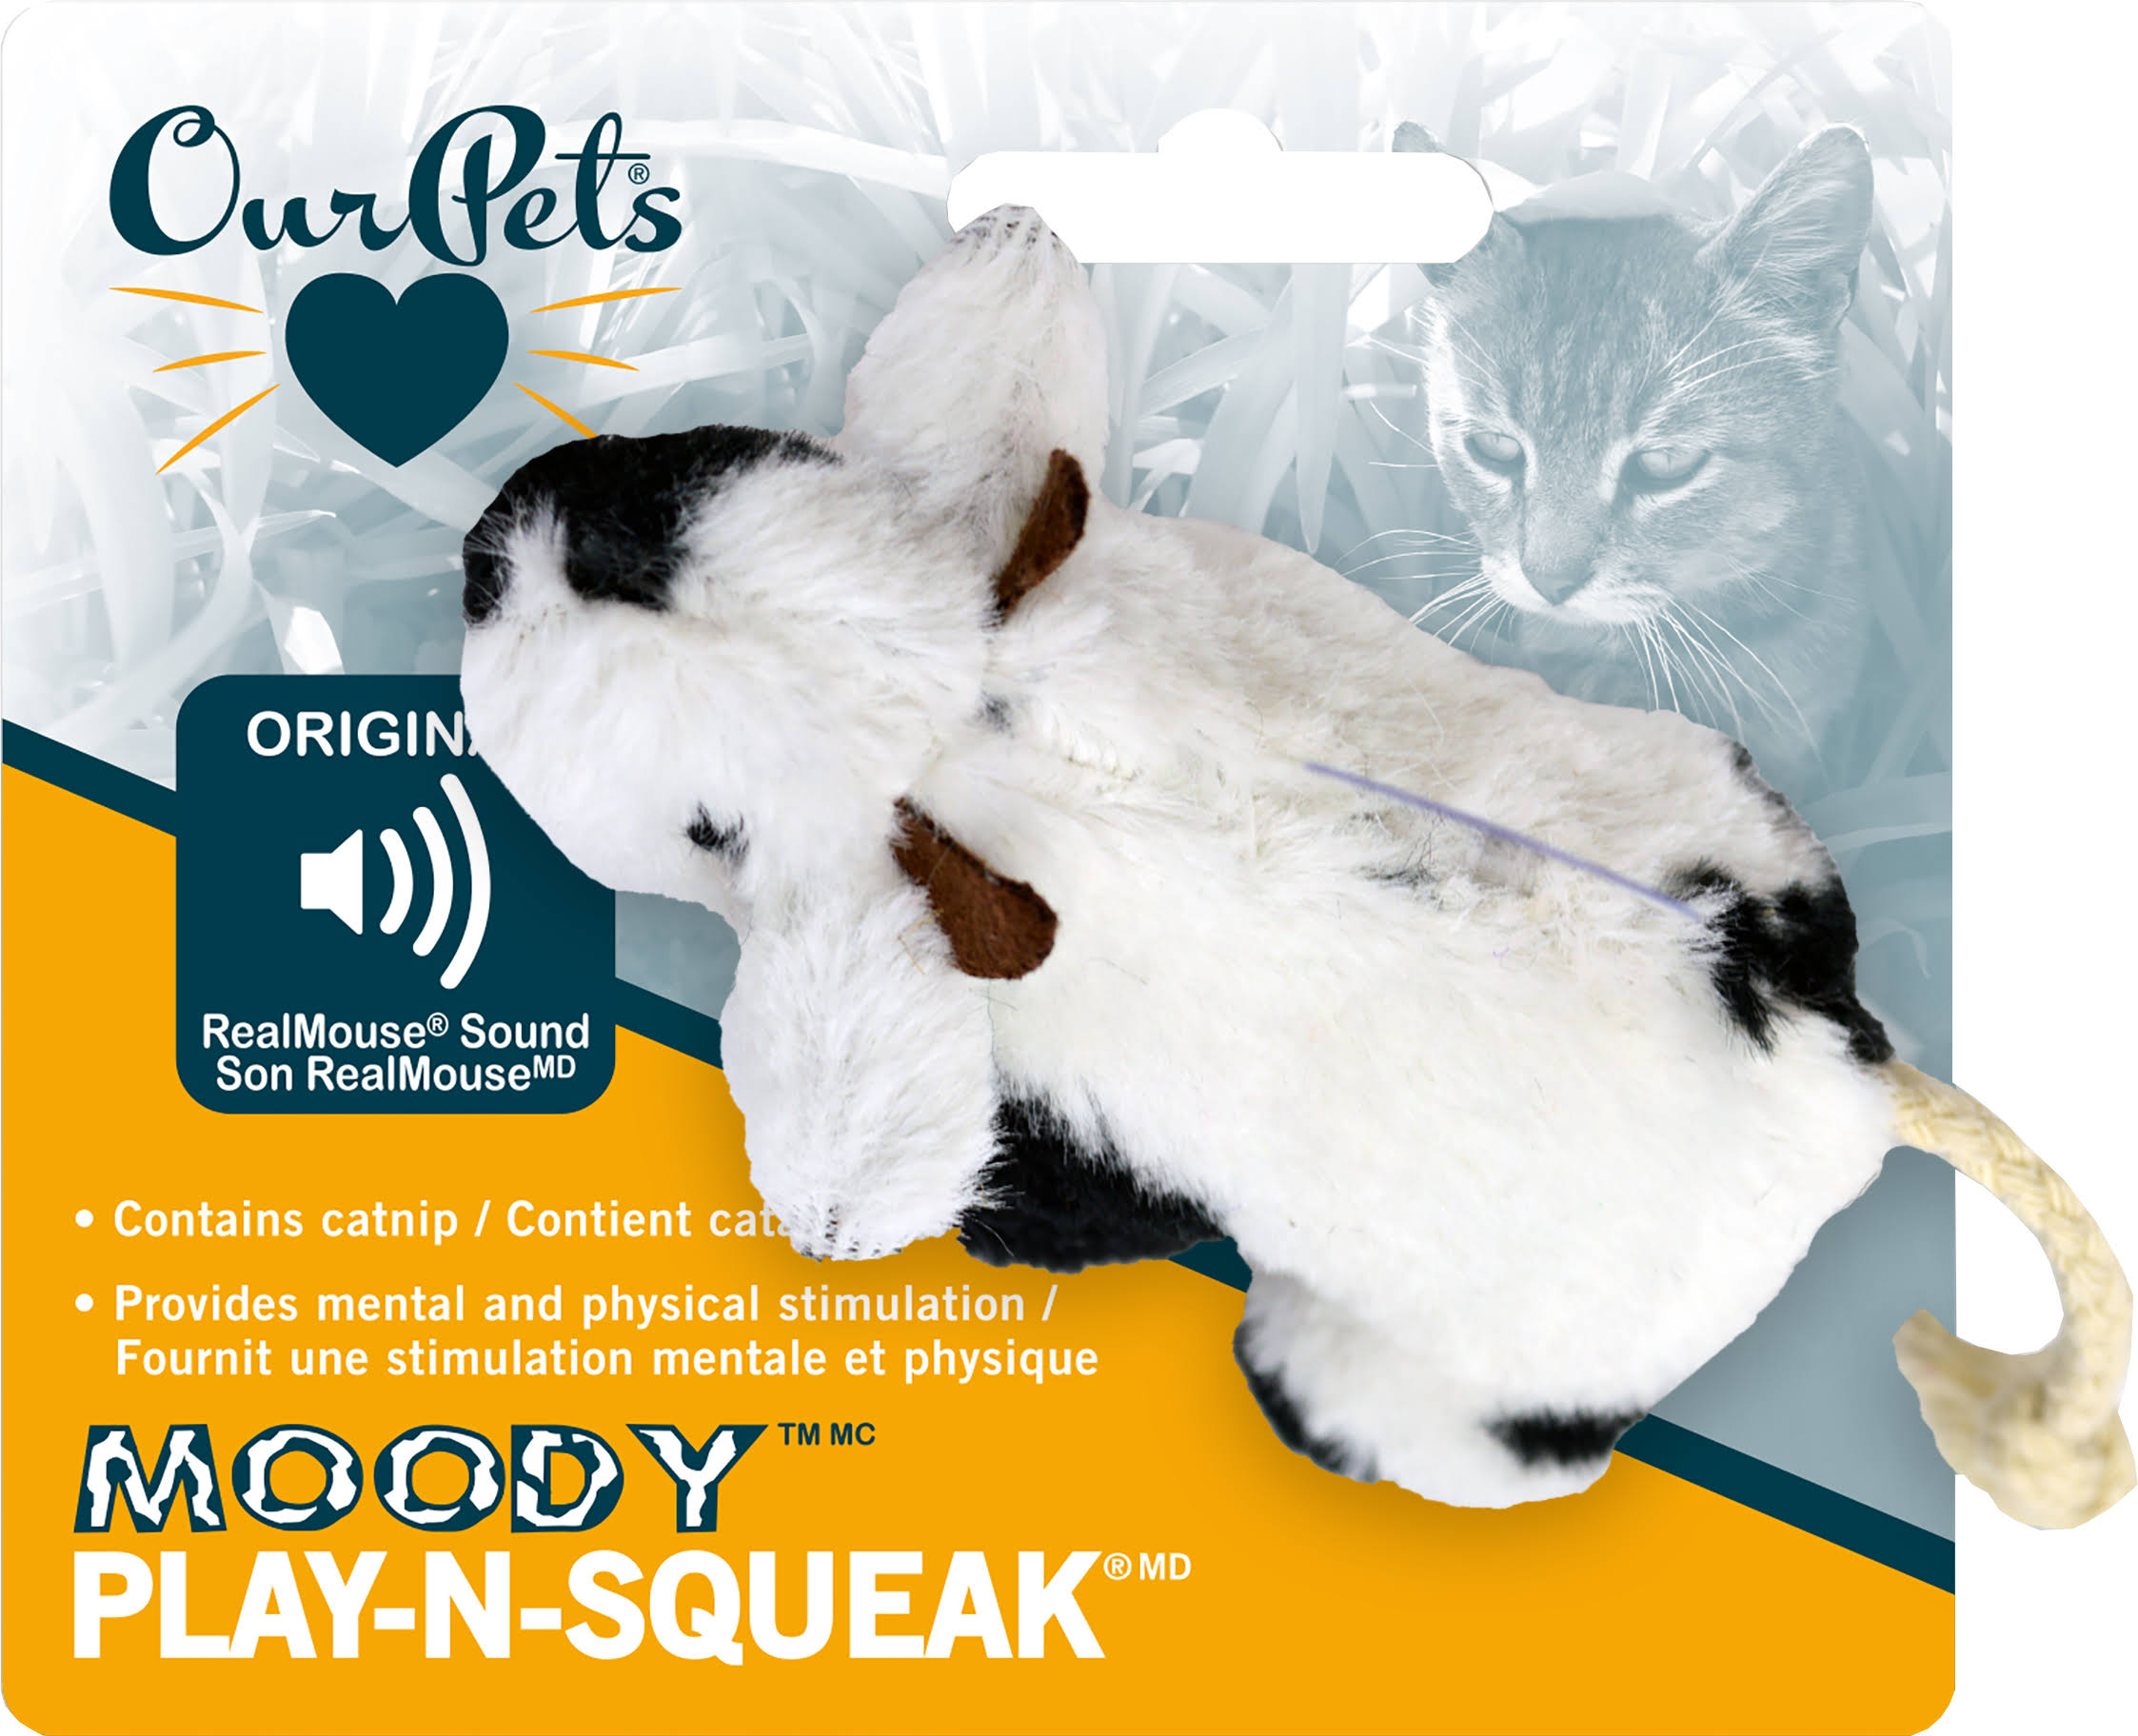 OurPet's Play N Squeak Moody Cow Cat Toy